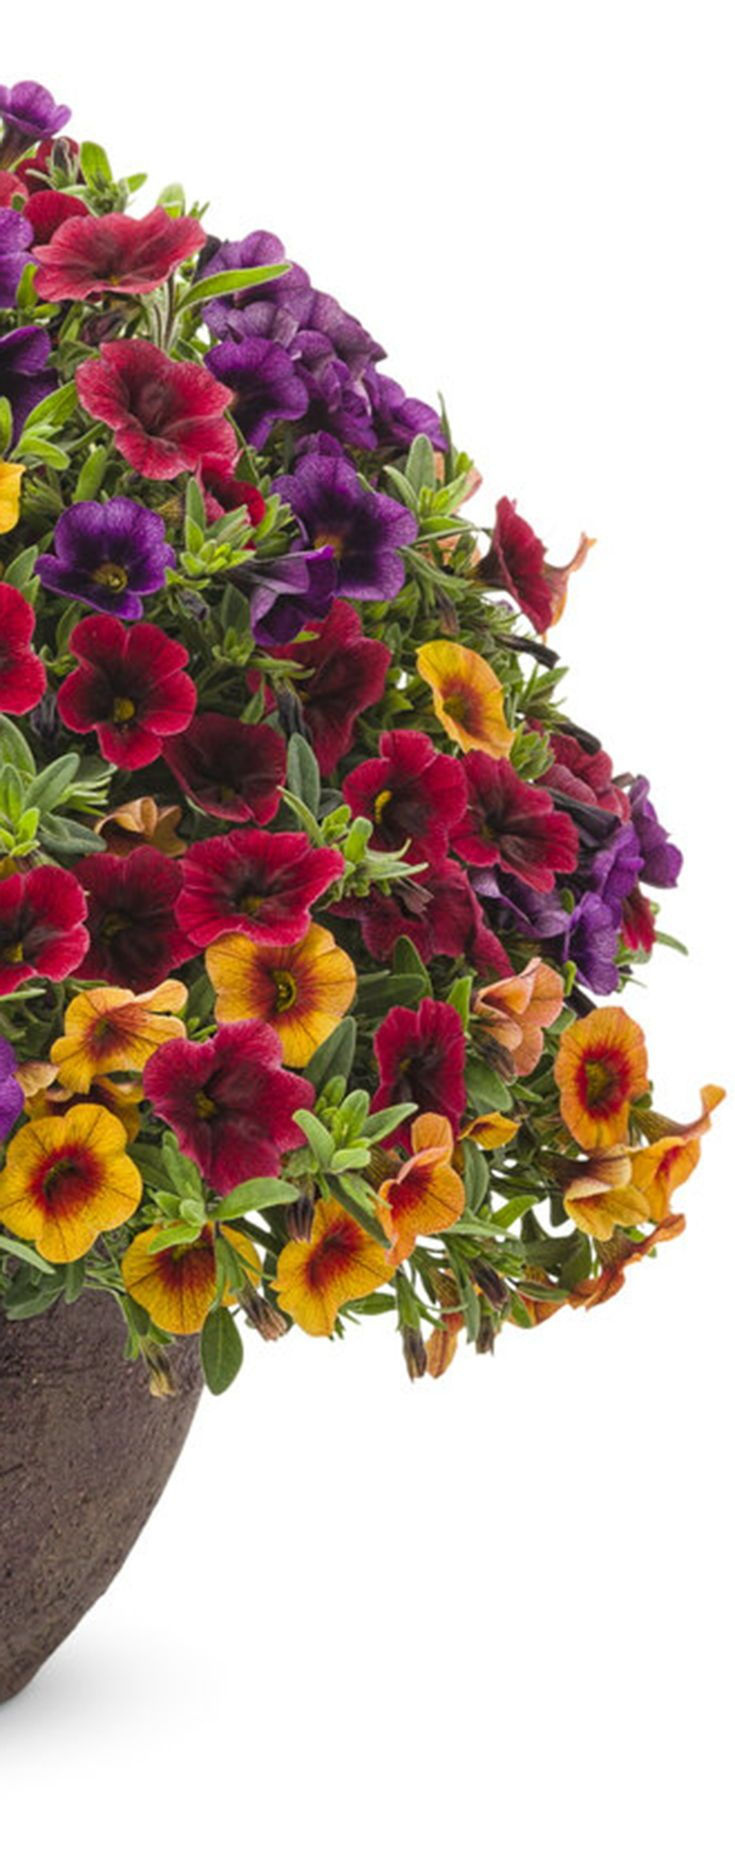 'Summer Punch' is a definite way to ramp up the color on your porch or deck this summer!